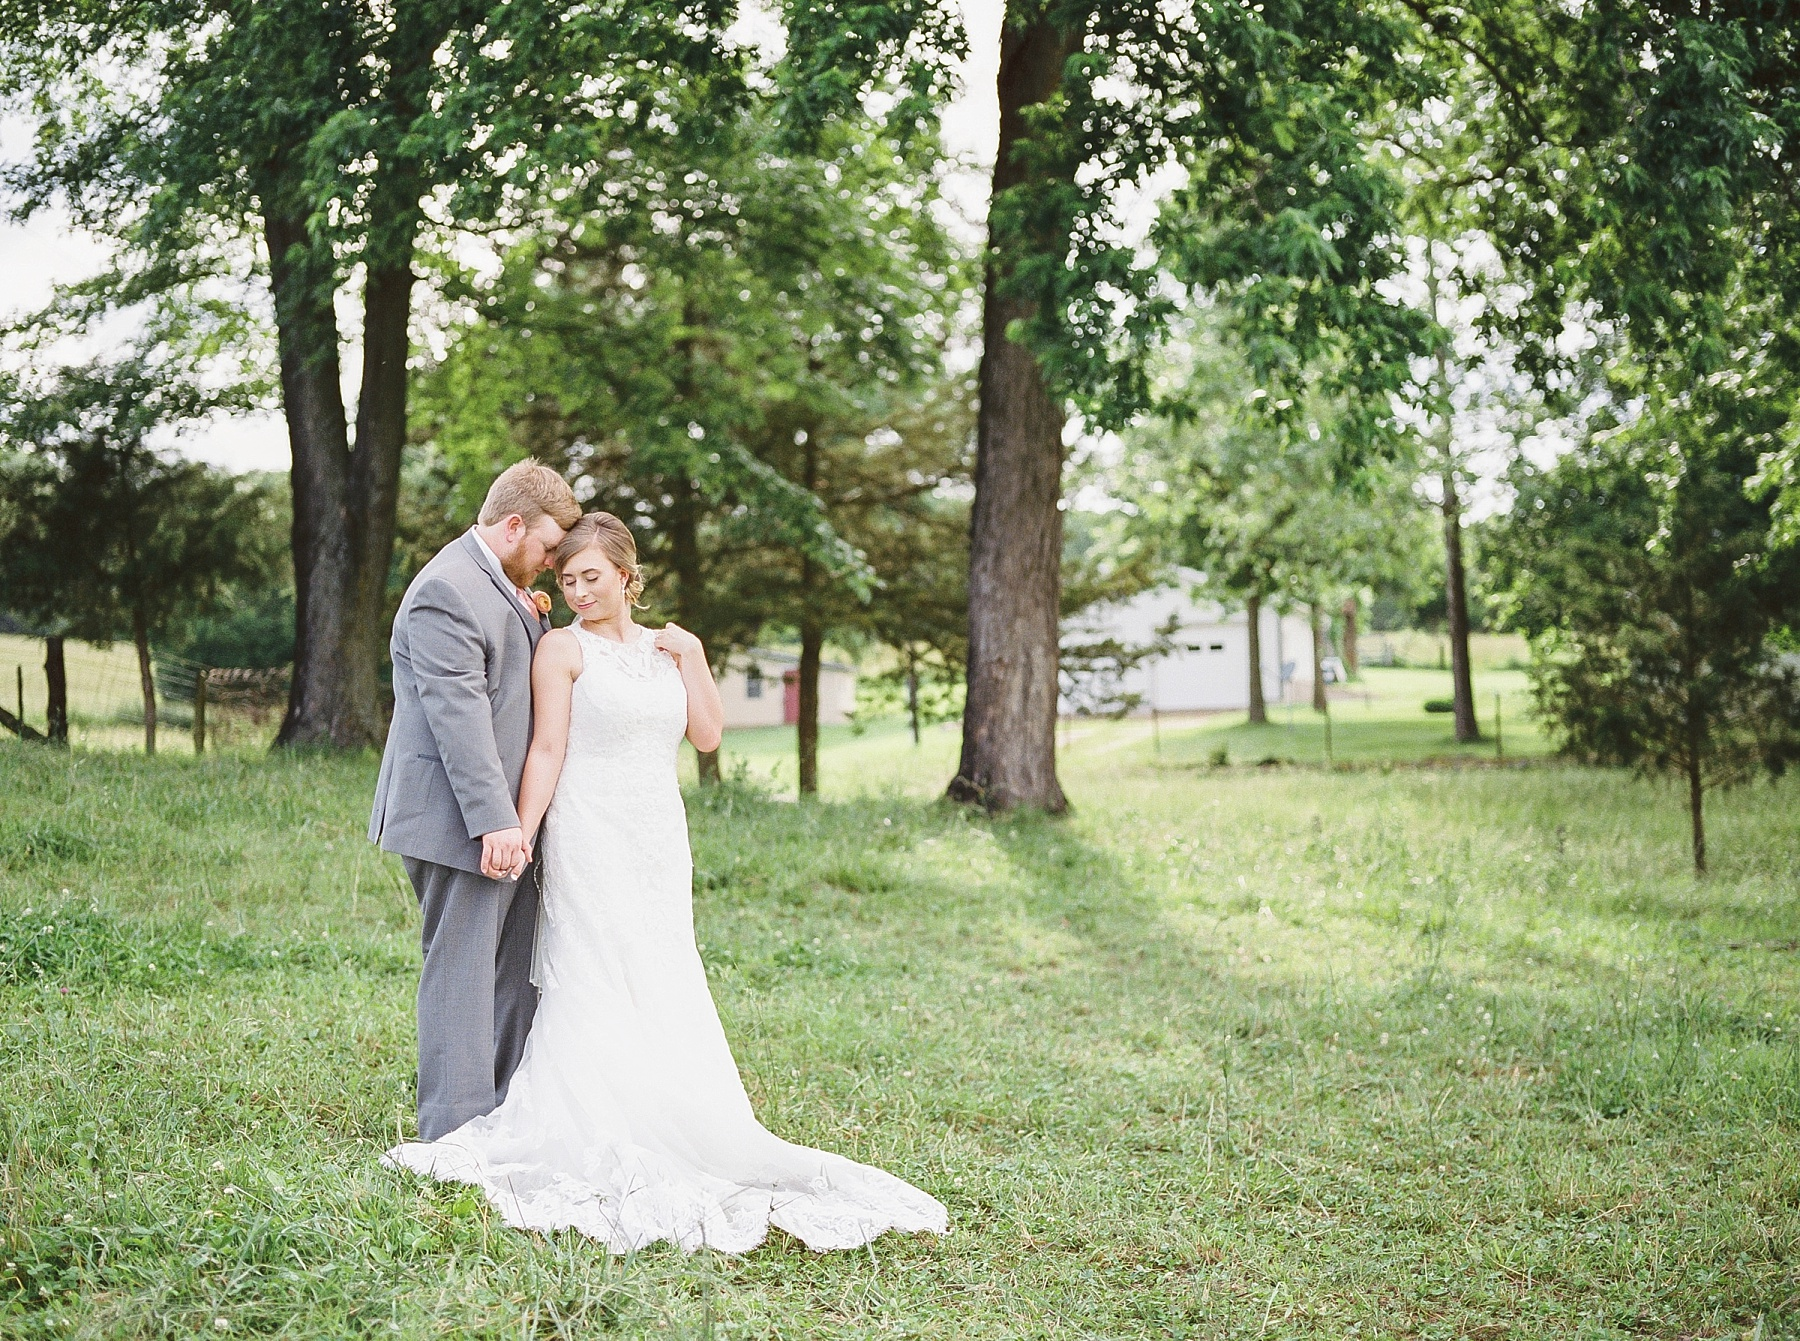 Peach and Dusty Blue Spring Wedding in Rolling Hills of Mid Missouri by Kelsi Kliethermes Photography Best Missouri and Maui Wedding Photographer_0017.jpg